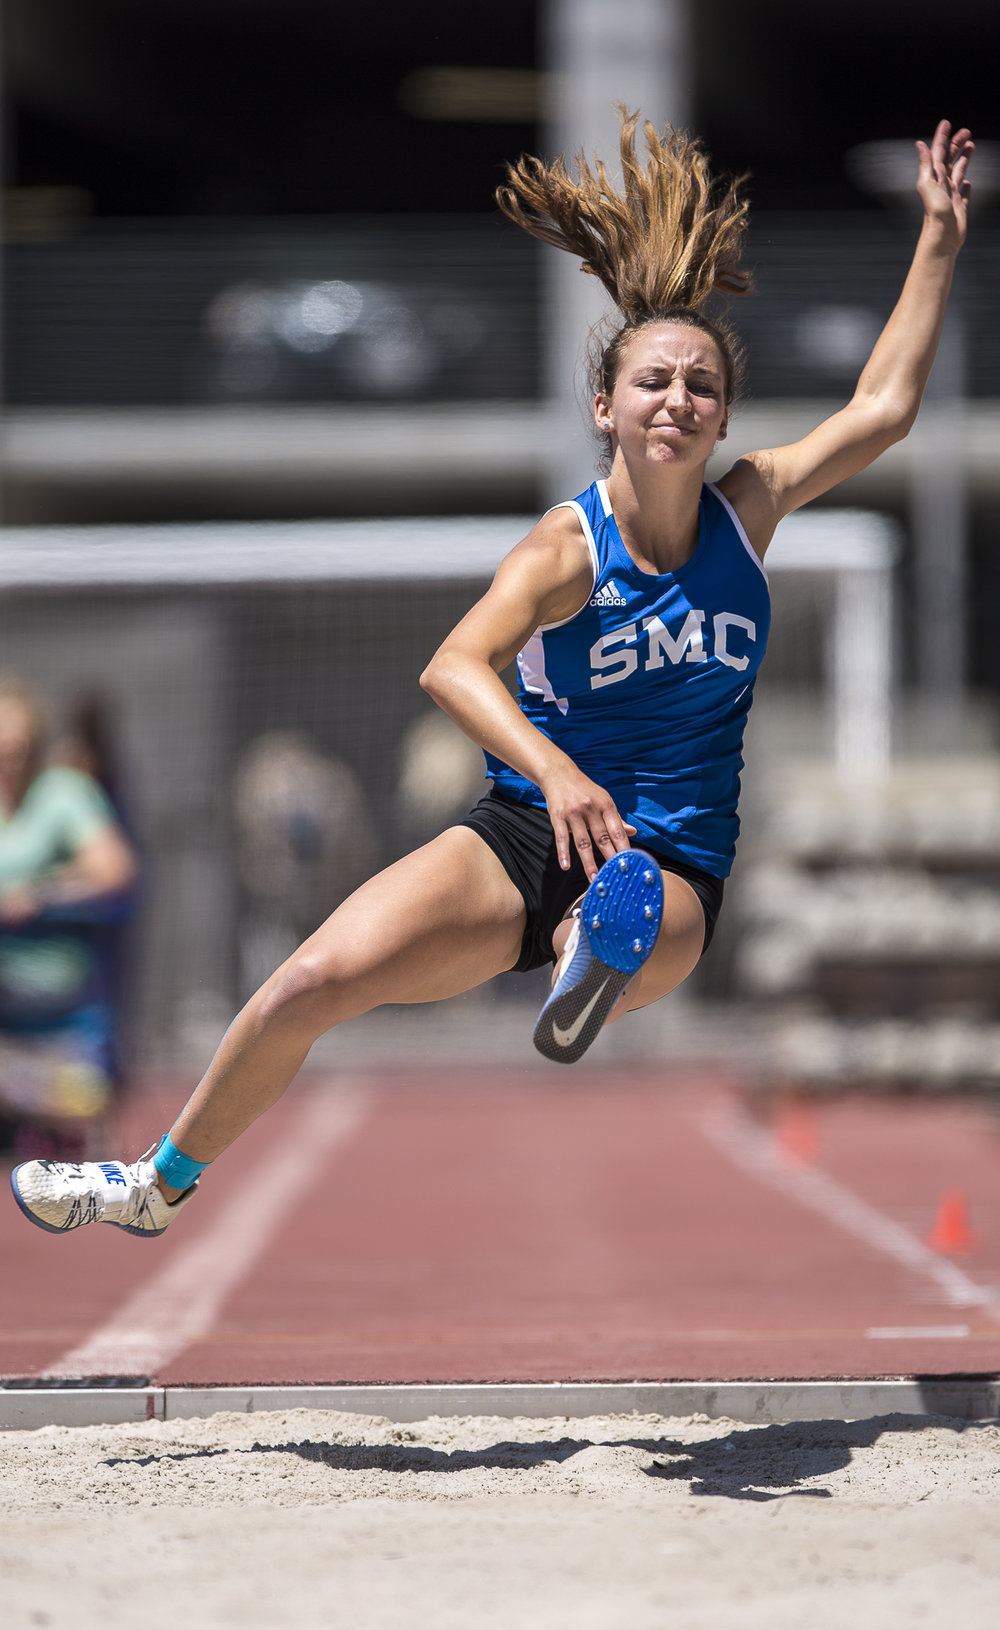 Santa Monica College (SMC) Corsair long jump athlete Joie Cosentino participates in the Women's long jump event that took place during the Track and Field Western State Championships at the SMC Corsair Stadium in Santa Monica California on Friday April 20 2018. Joie Consentino jumped a lifetime best of 4.93 meters to take 6th place. (Matthew Martin/Corsair Photo)